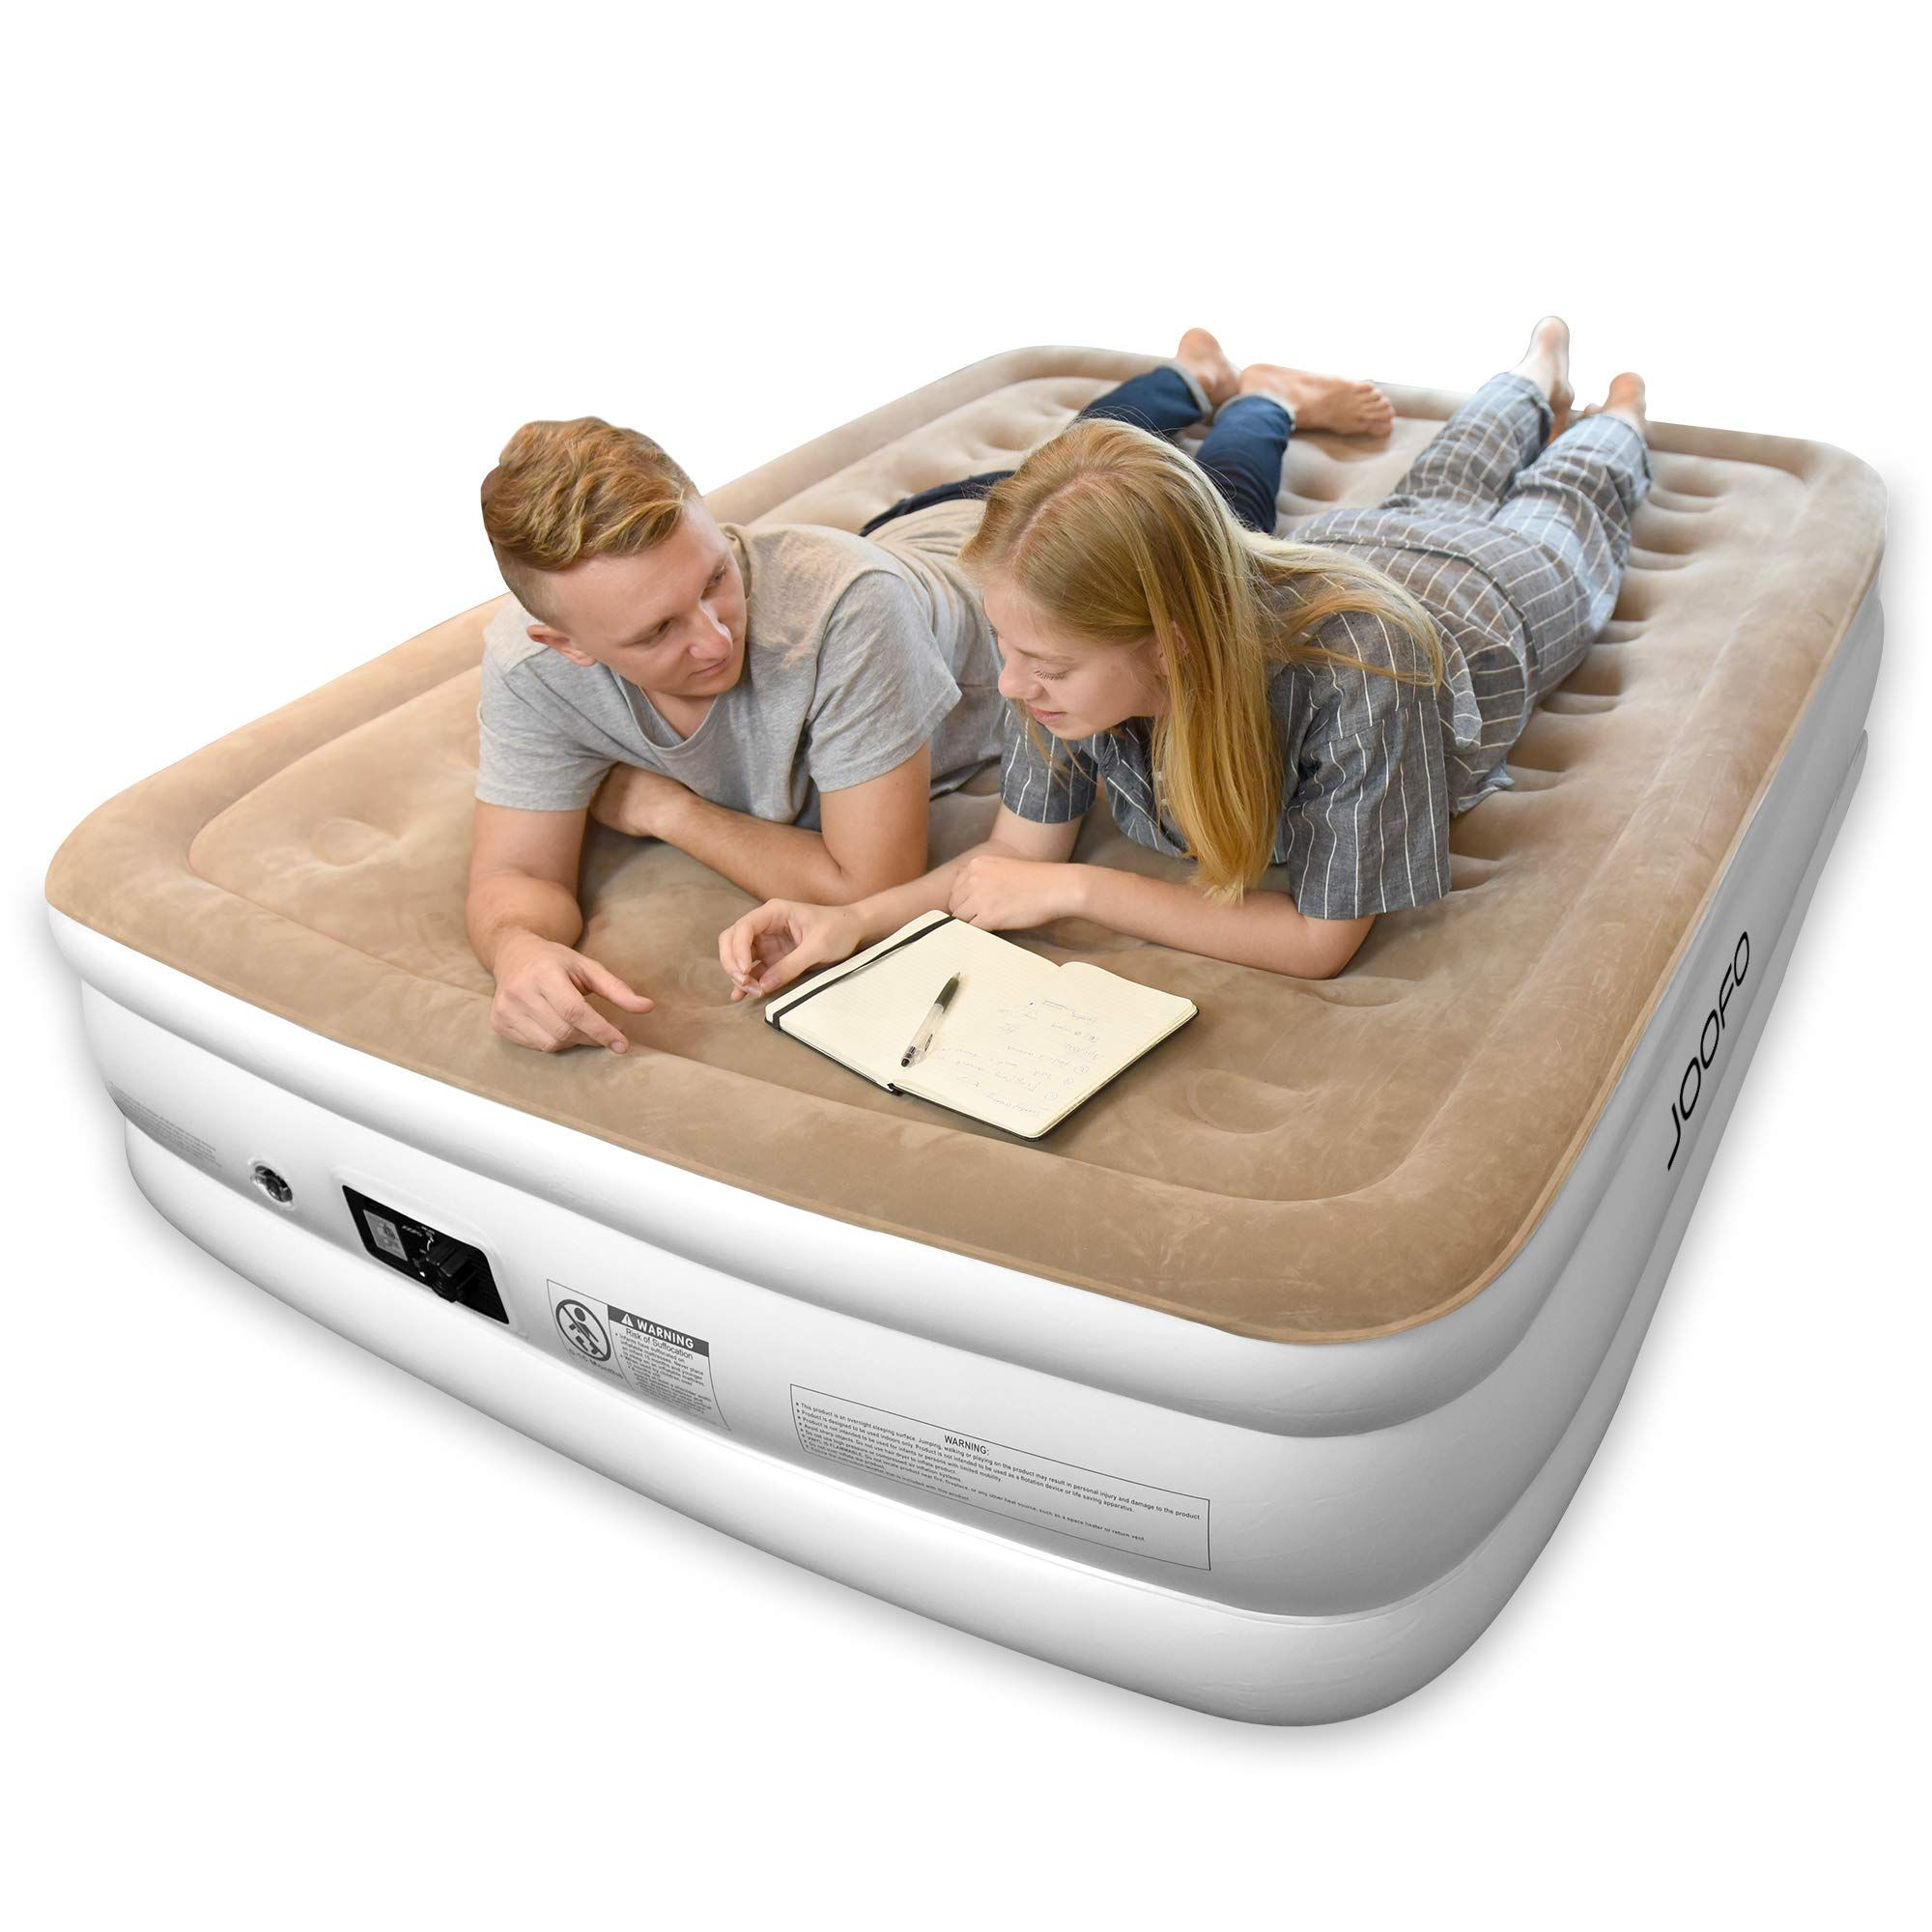 Joofo Air Mattress Queen Breathability And Comfort Double High Raised Inflatable Airbed With Upgraded Built In Pump For Air Mattresses Mattress Queen Mattress